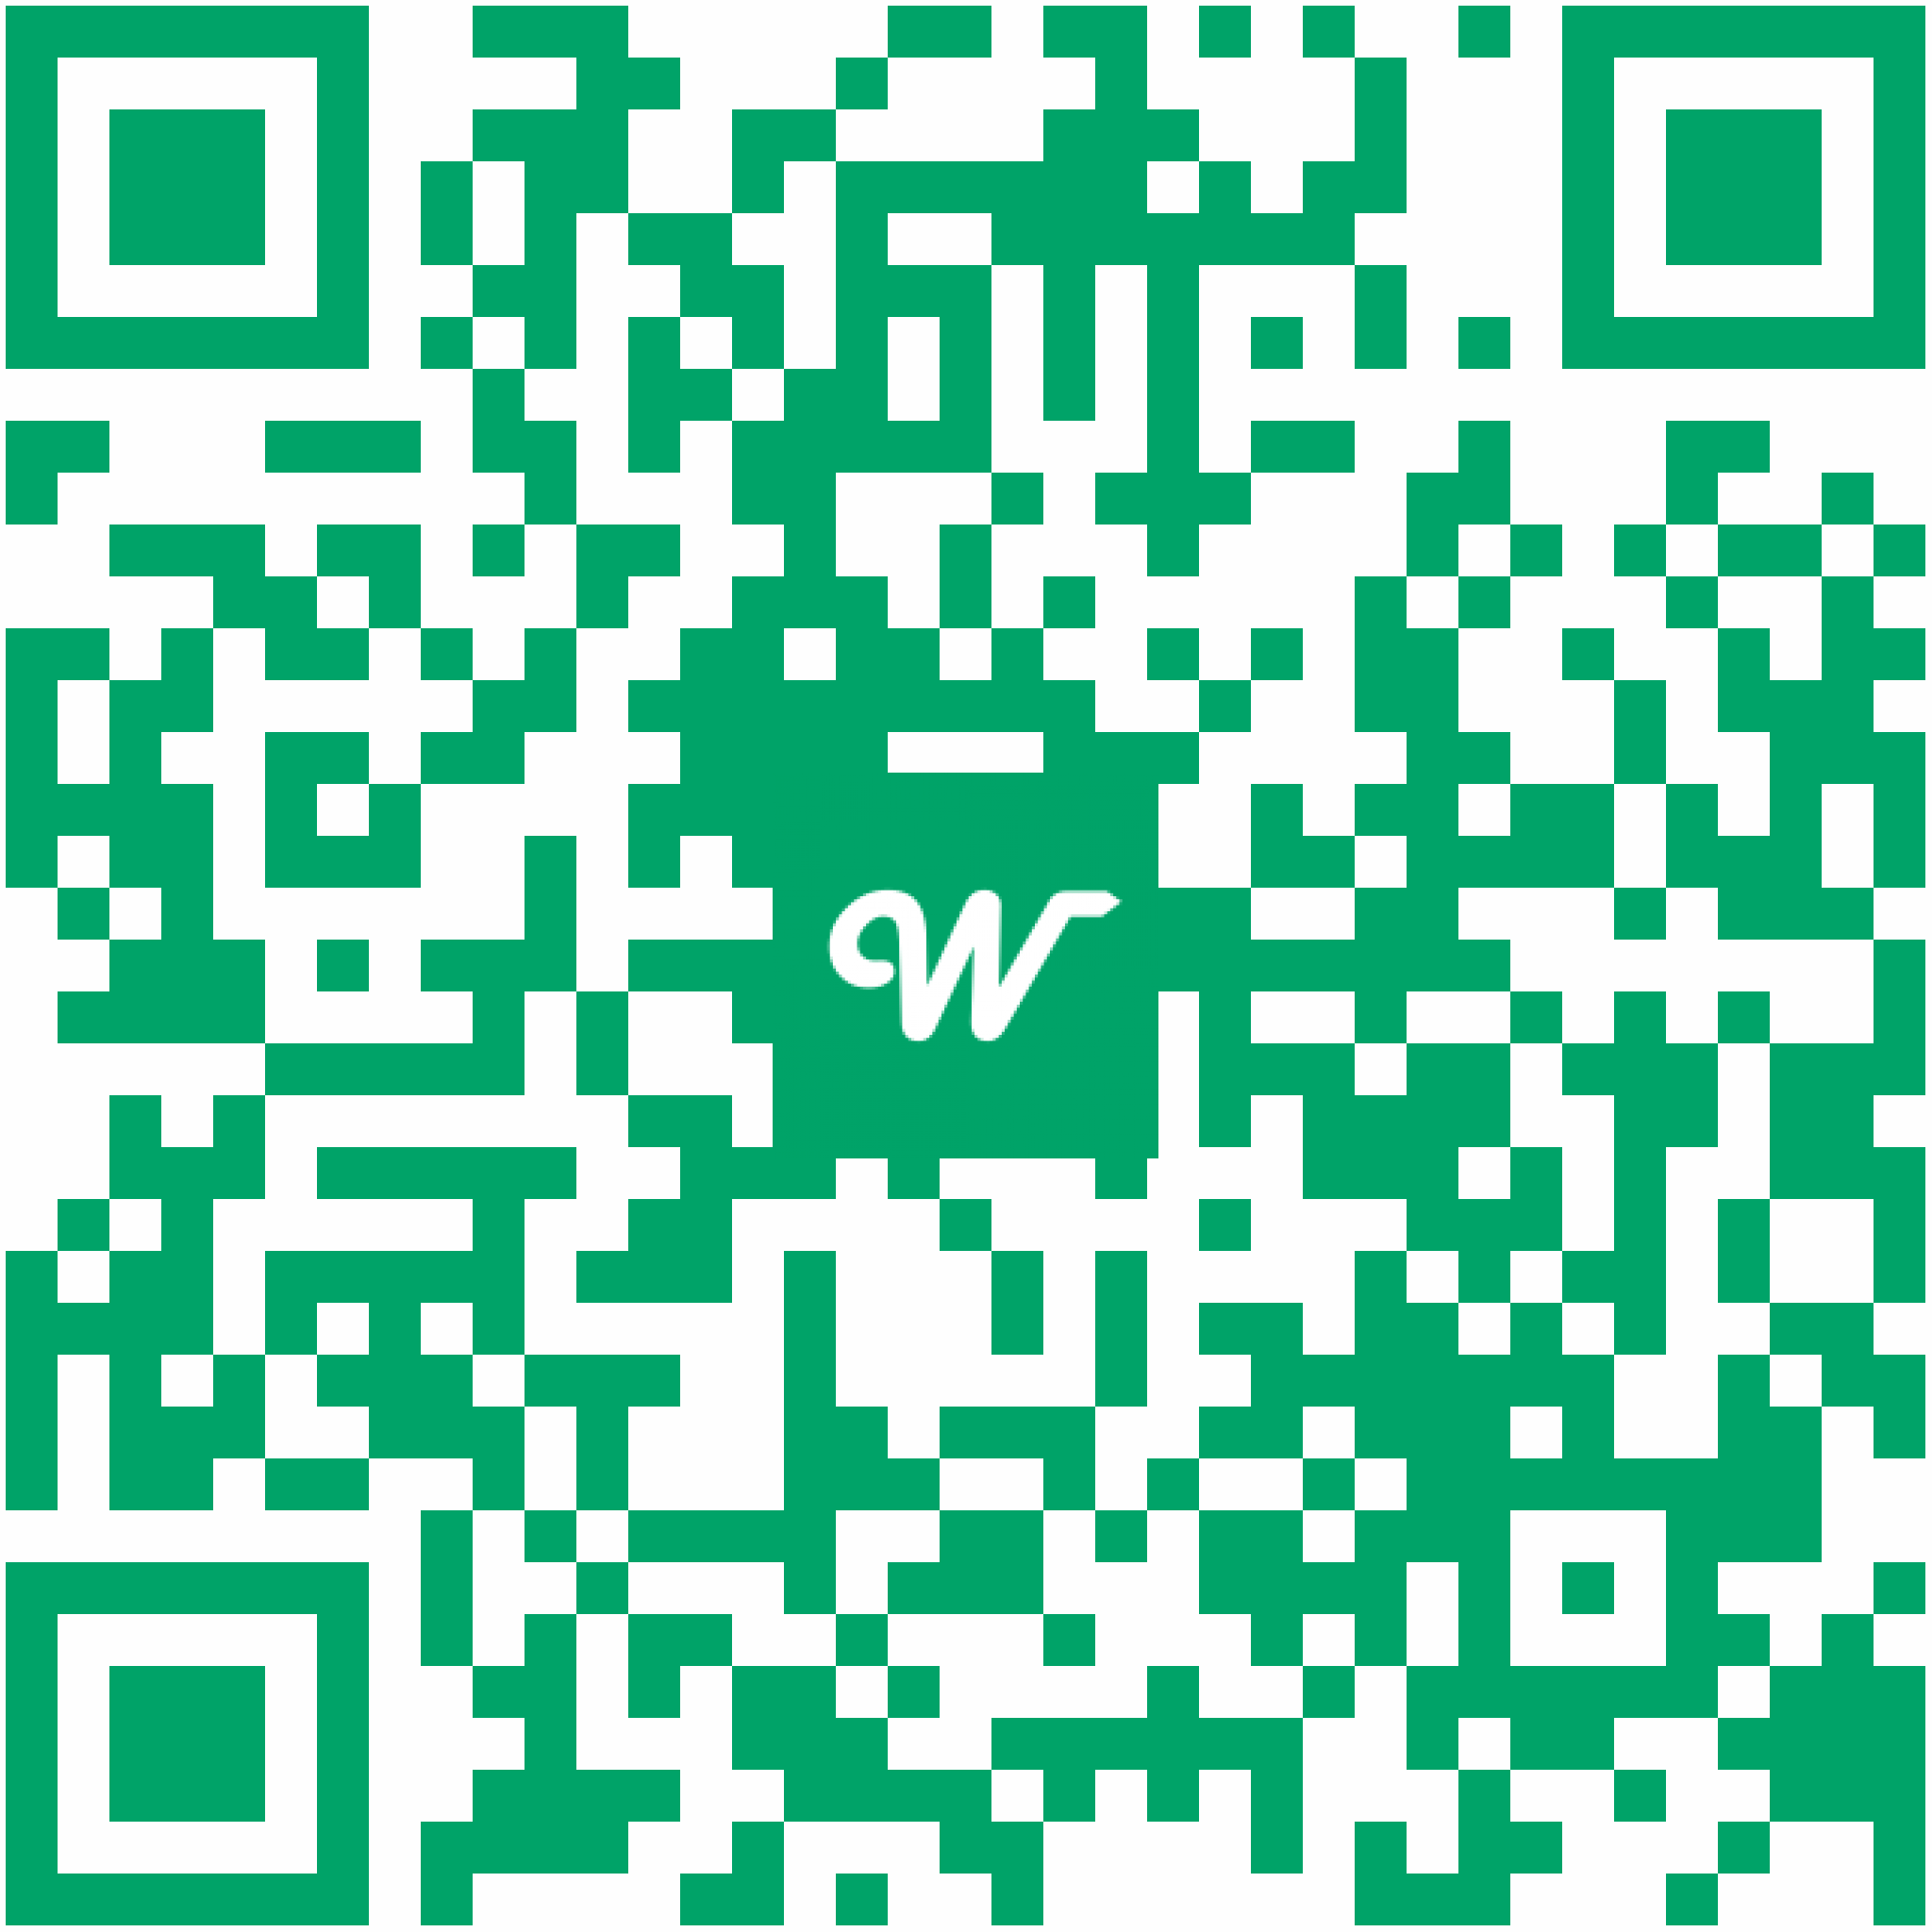 Printable QR code for Sun Inns Hotel Mentari Sunway